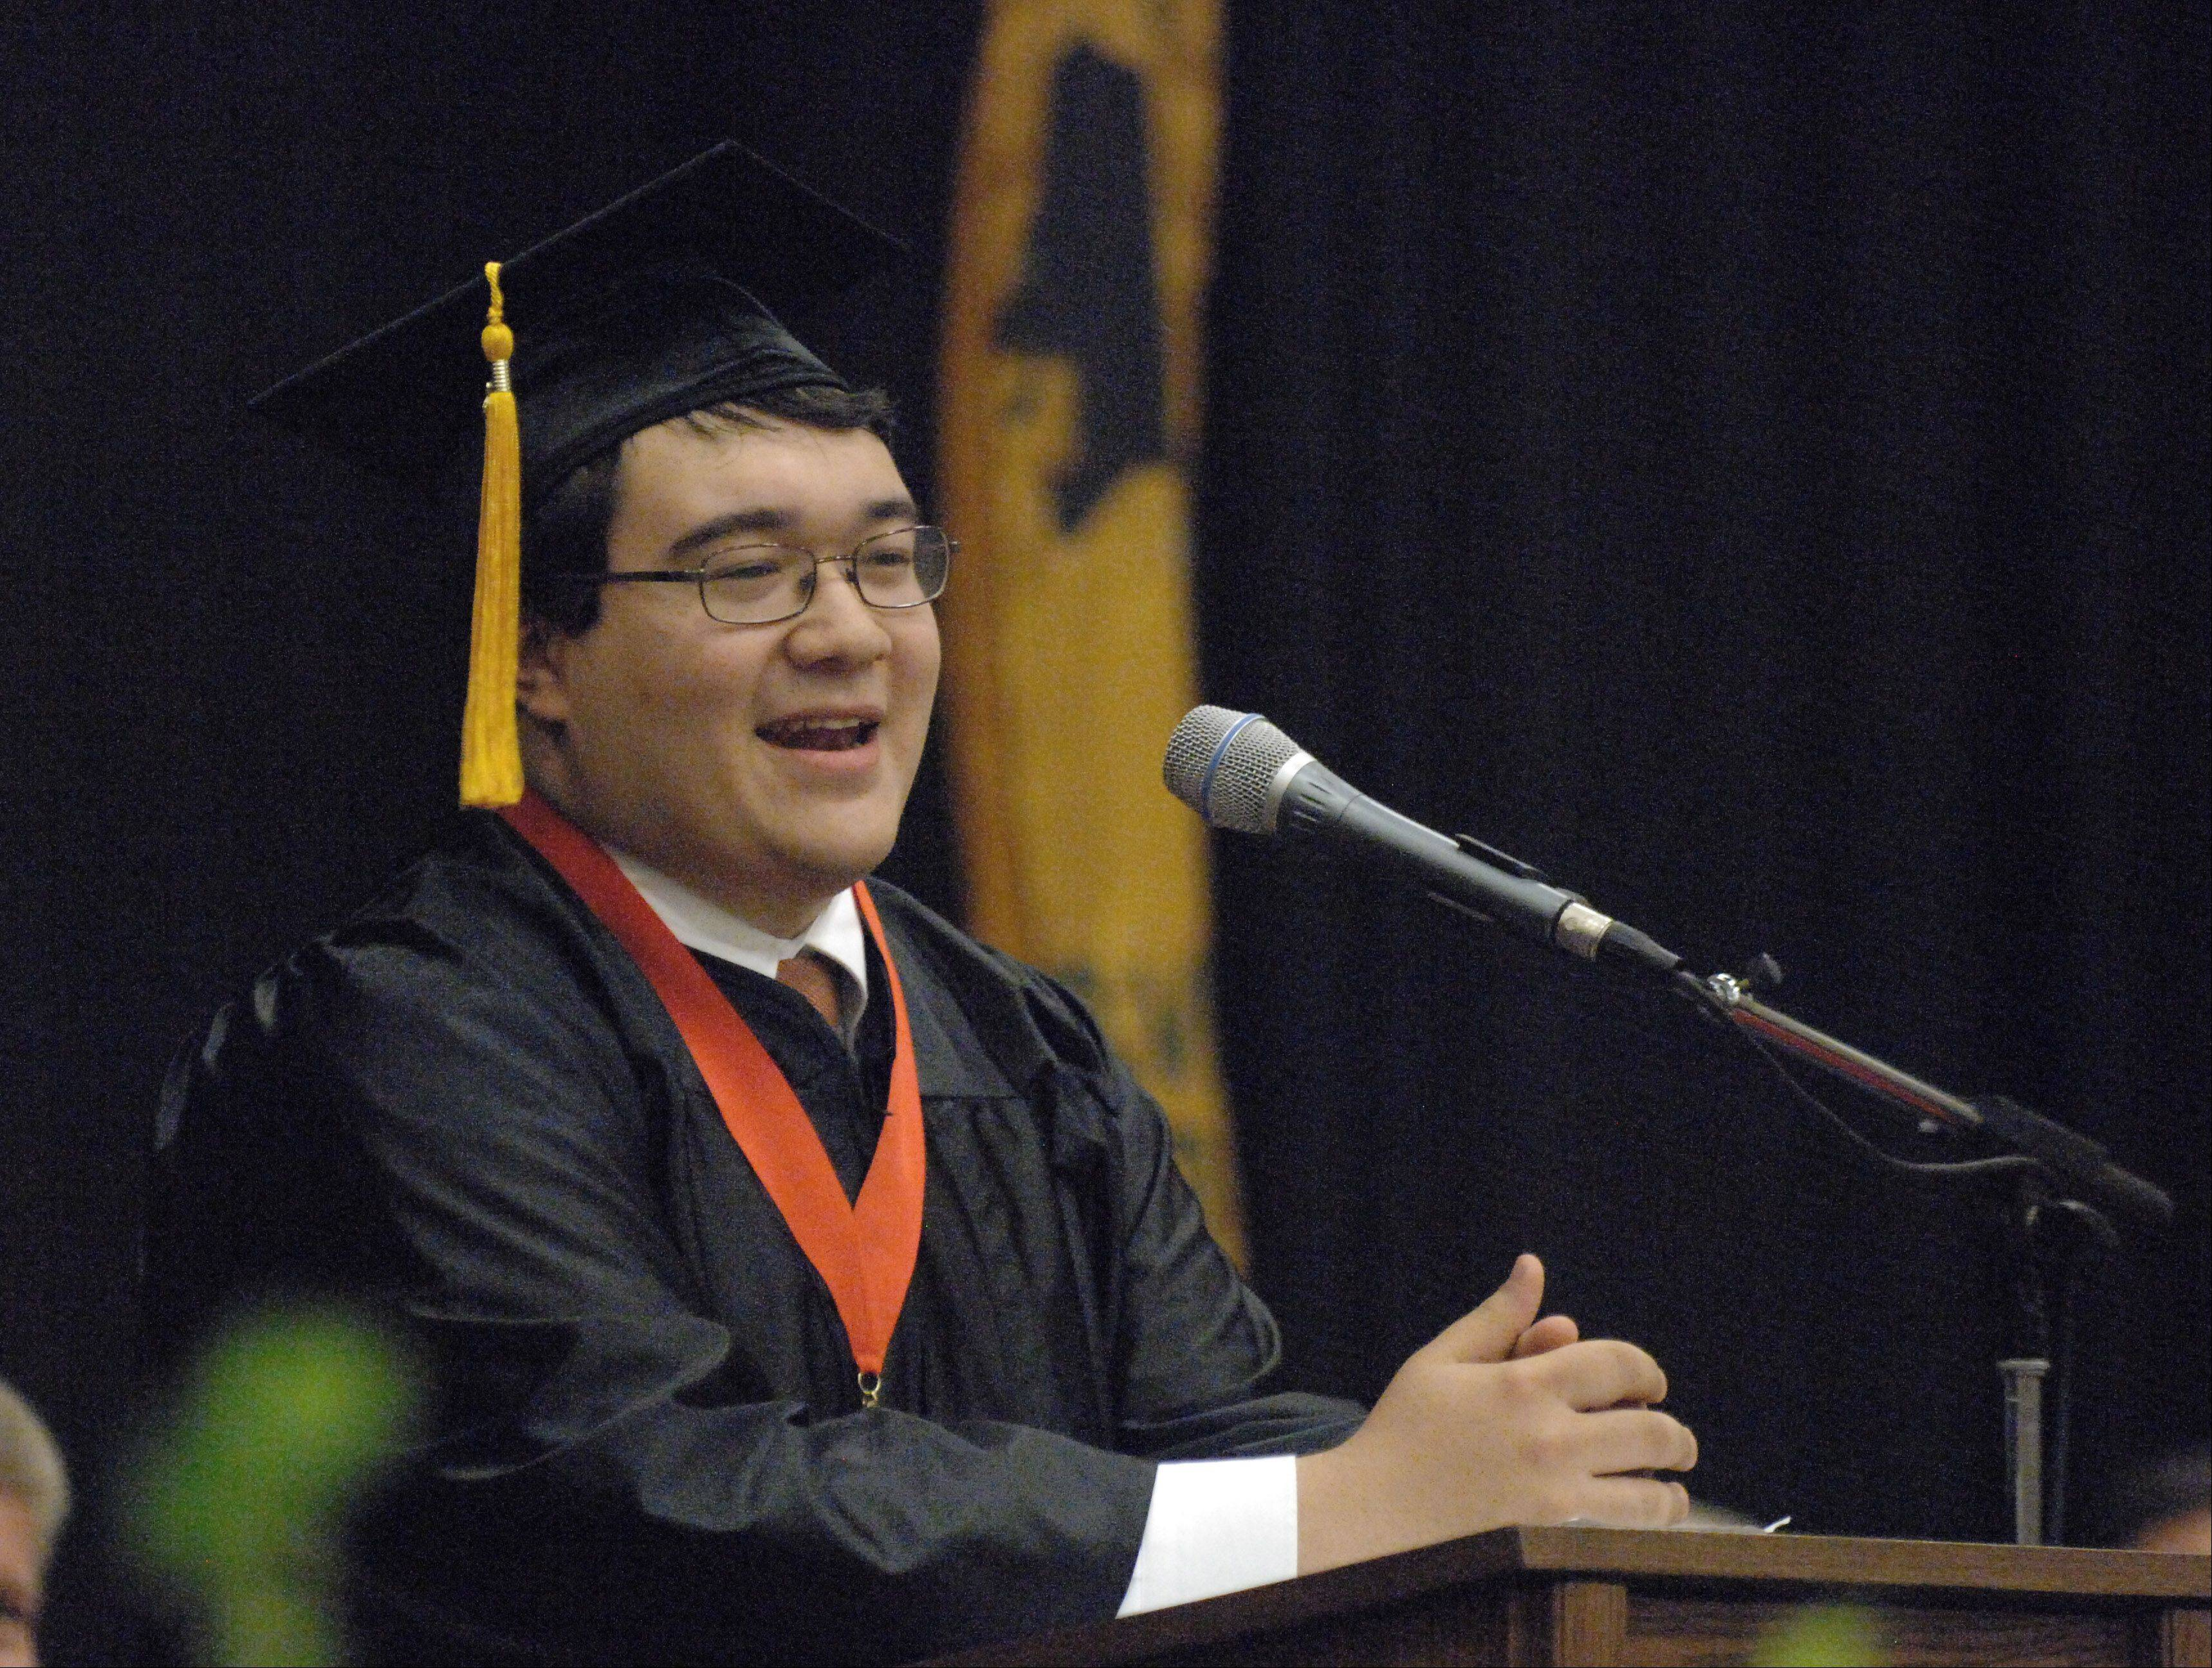 Samuel Niiro gives the commencement address during the Wheaton Warrenville South graduation at college of DuPage Saturday.